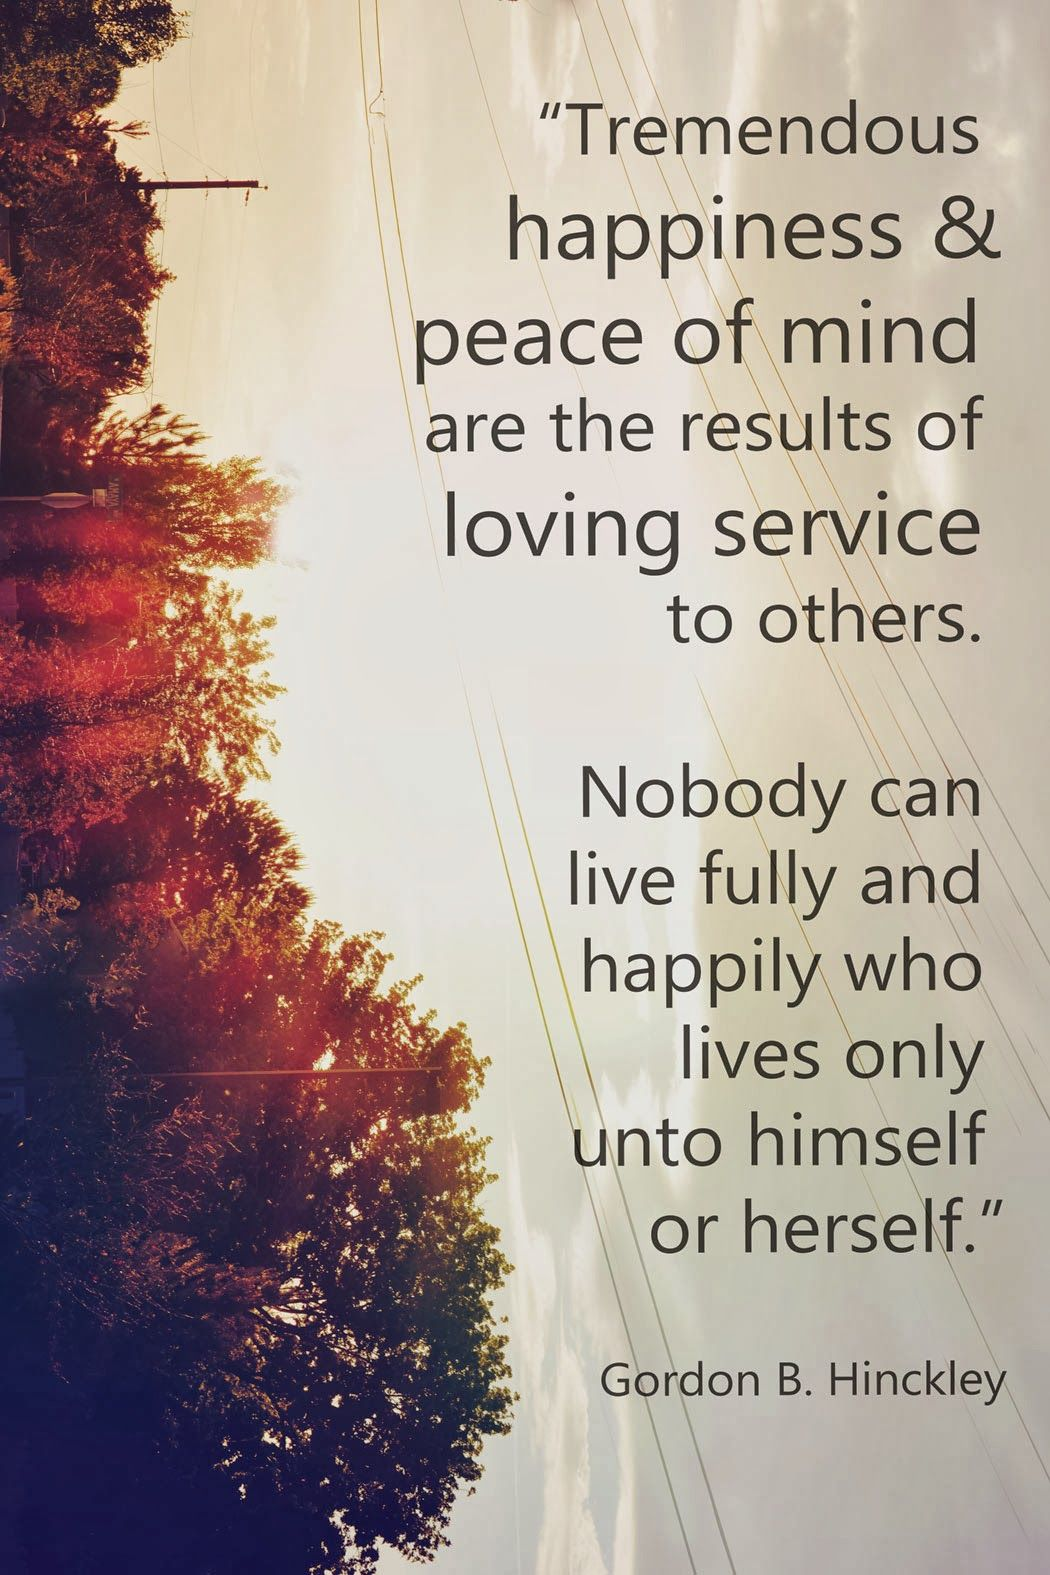 Quotes About Helping Others Gordon Bhinckley Lds Quoteshelping Others  Helping Me .